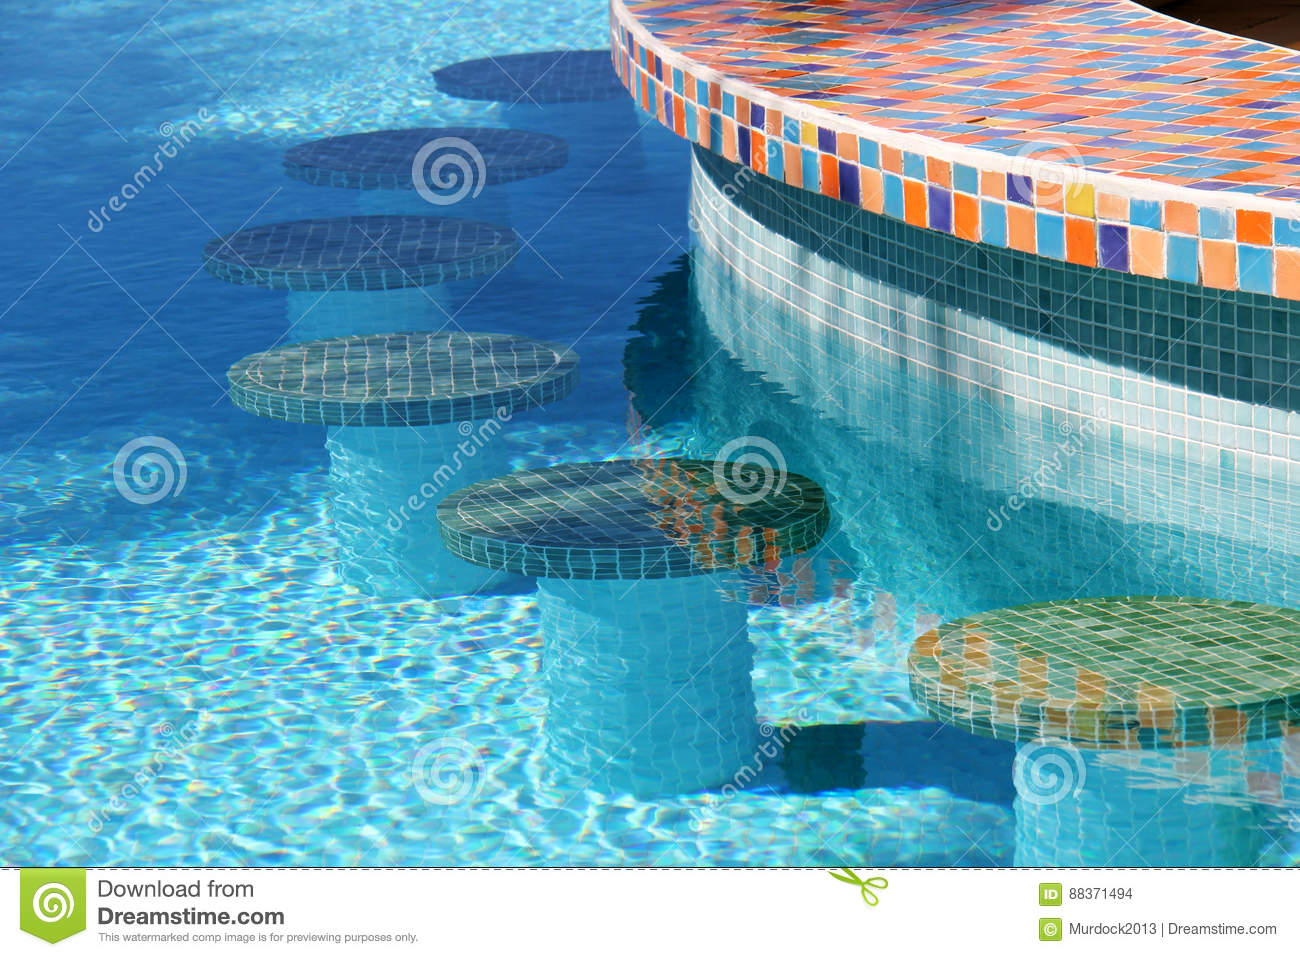 Swimming pool bar stools stock photo. Image of seat, table ...